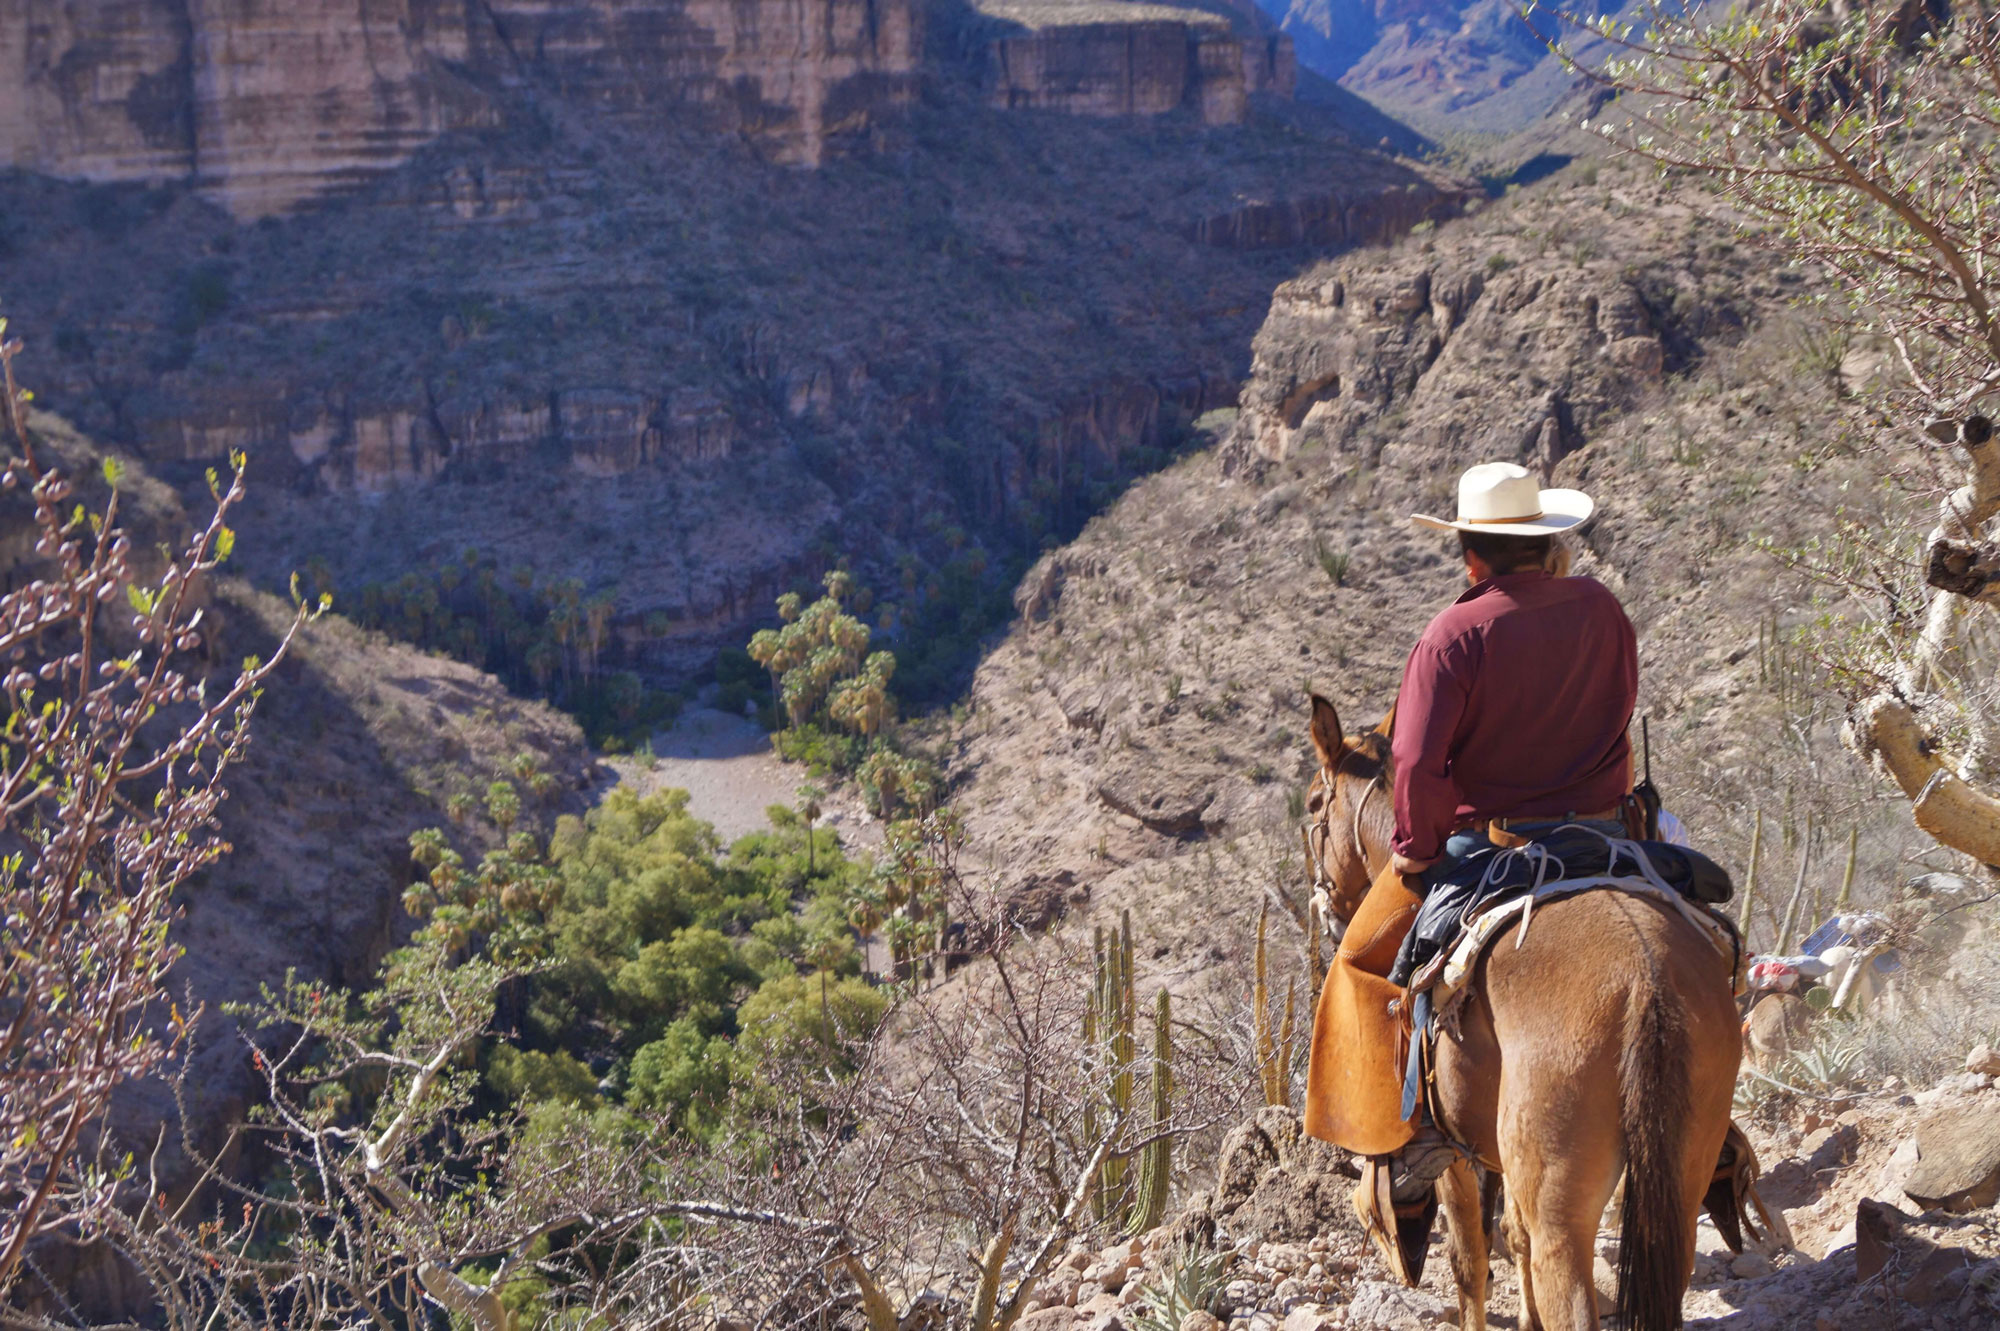 A person in a white cowboy hat and maroon button-up sits on a horse. They are staring out at an arid desert landscape with plants in the foreground and canyon walls in the background.